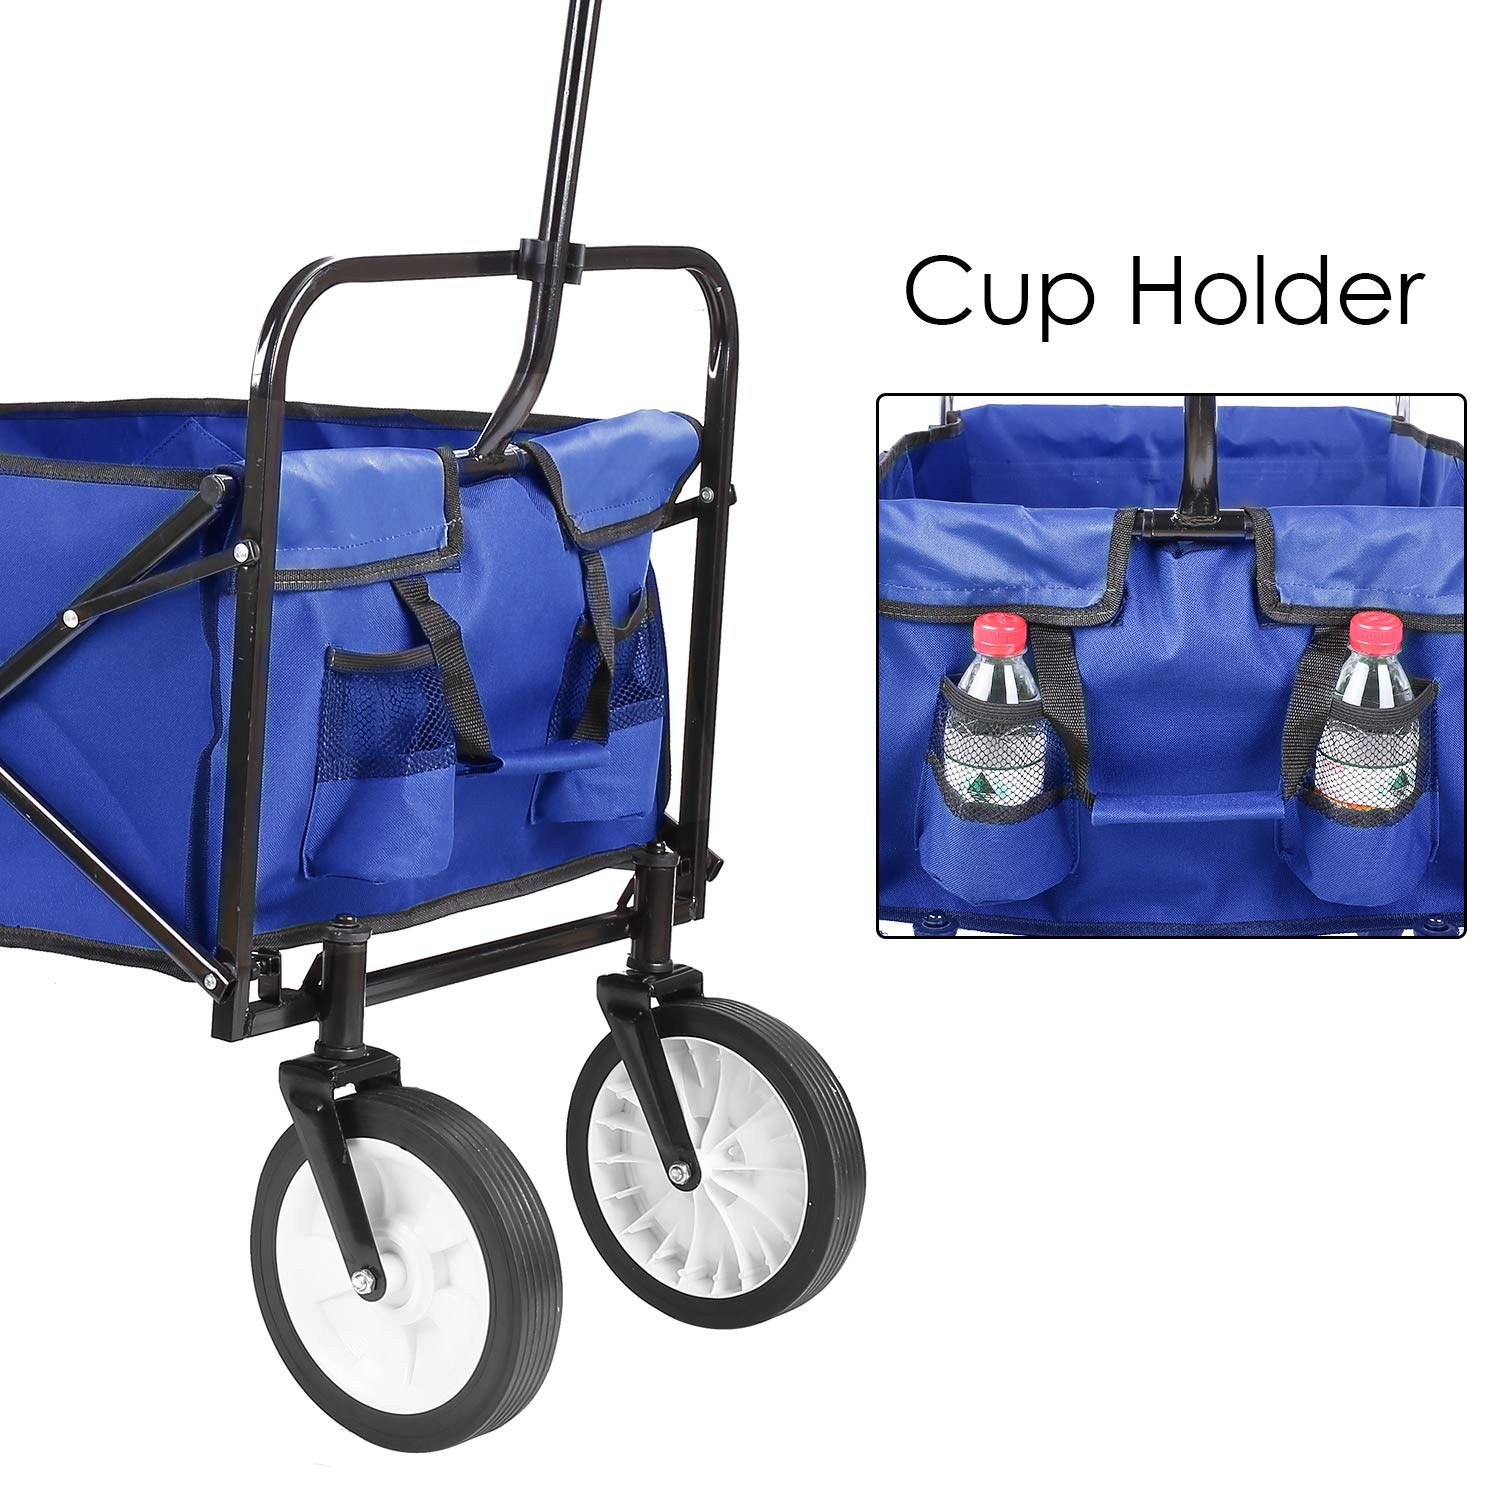 Collapsible Outdoor Utility Wagon, Heavy Duty Folding Garden Portable Hand Cart, with 8'' Rubber Wheels and Drink Holder, Suit for Shopping and Park Picnic, Beach Trip and Camping (Blue) by HEMBOR (Image #4)